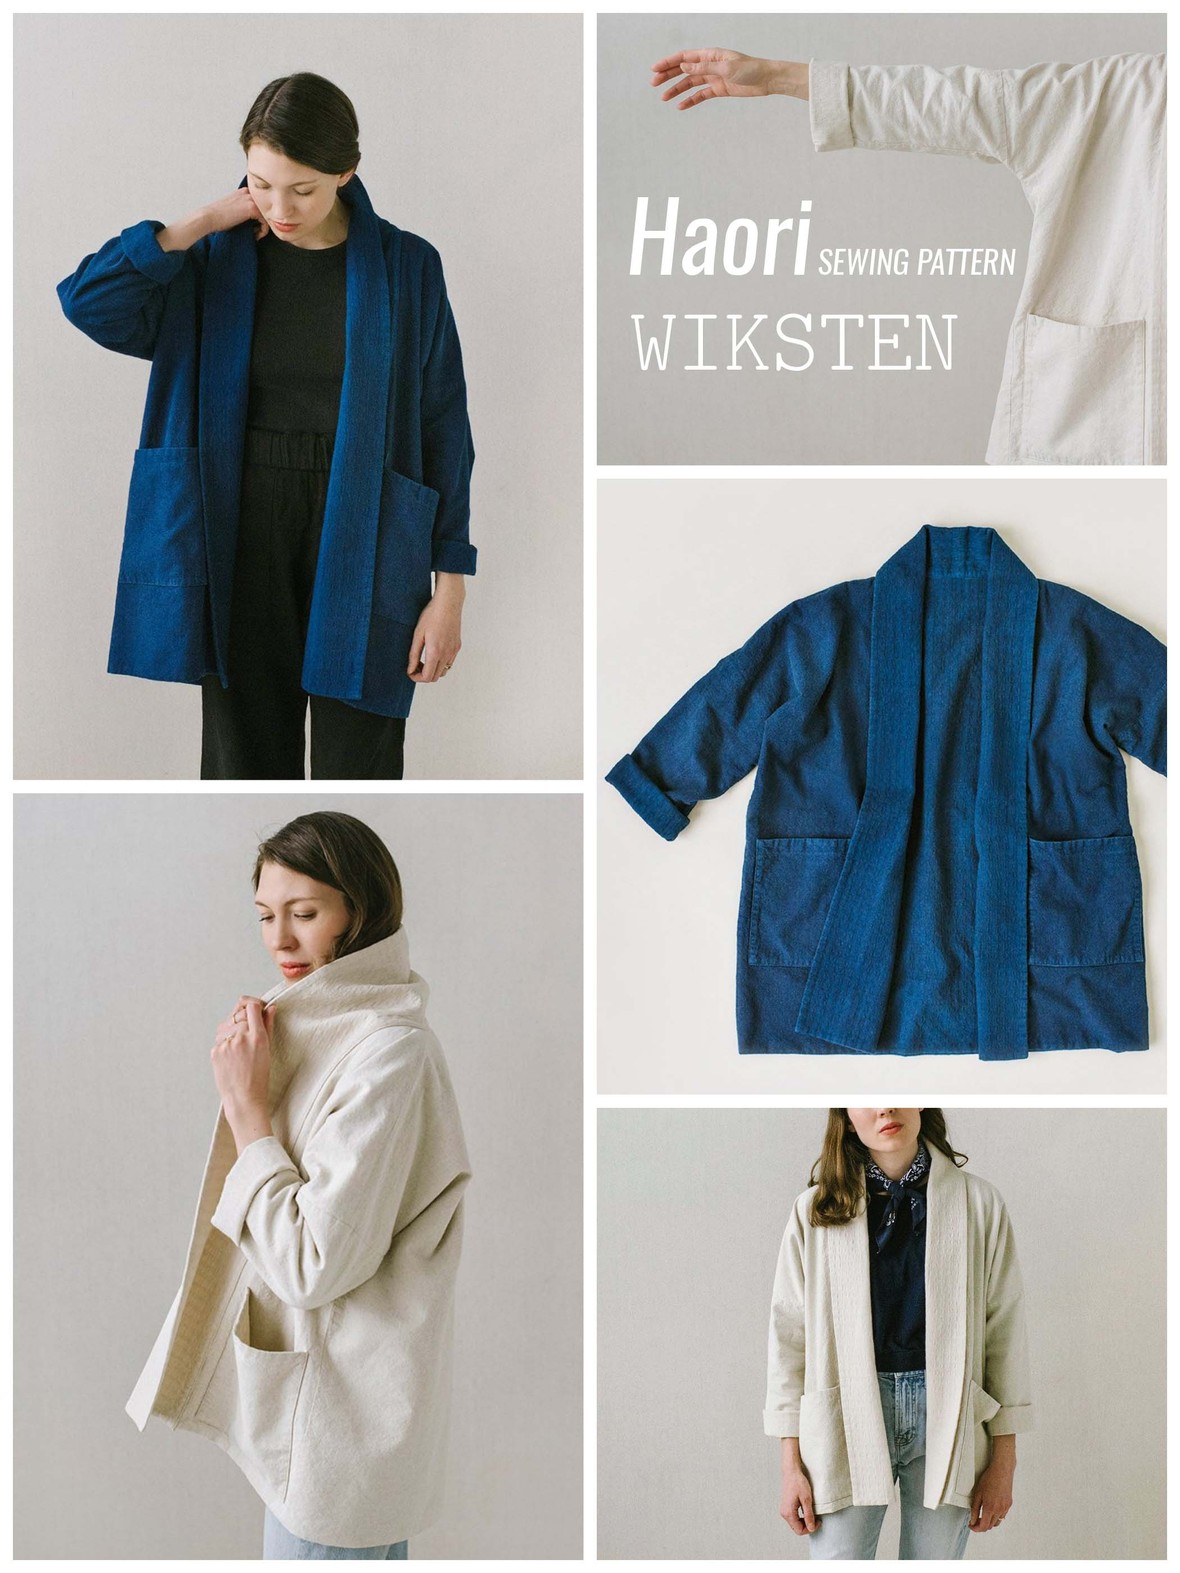 Wiksten Haori Pattern at Hawthorne